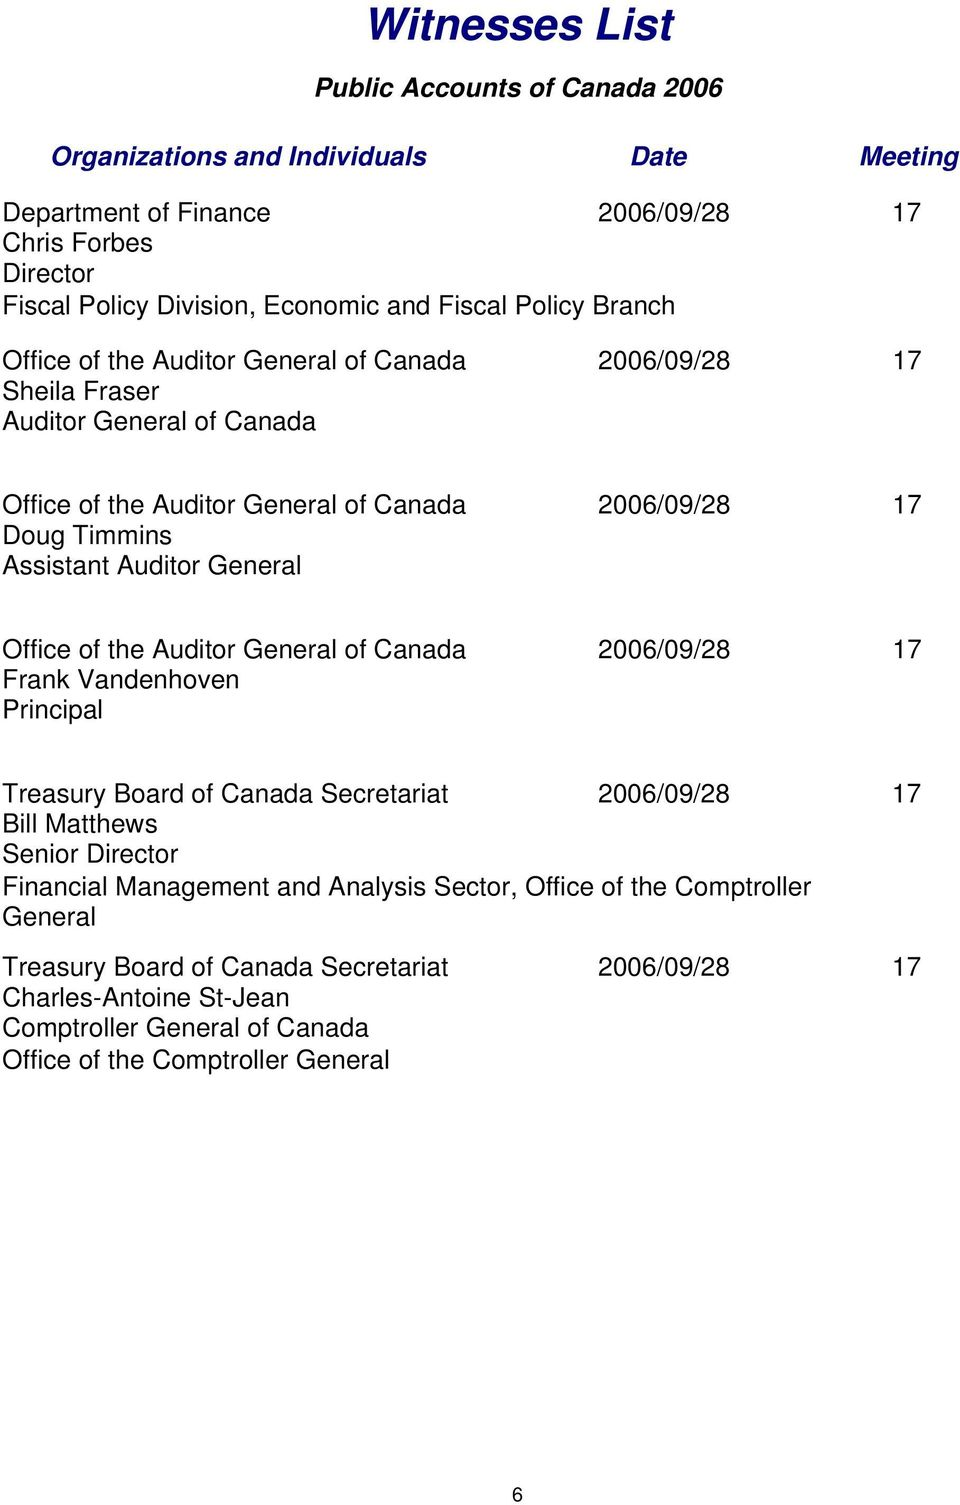 General Office of the Auditor General of Canada 2006/09/28 17 Frank Vandenhoven Principal Treasury Board of Canada Secretariat 2006/09/28 17 Bill Matthews Senior Director Financial Management